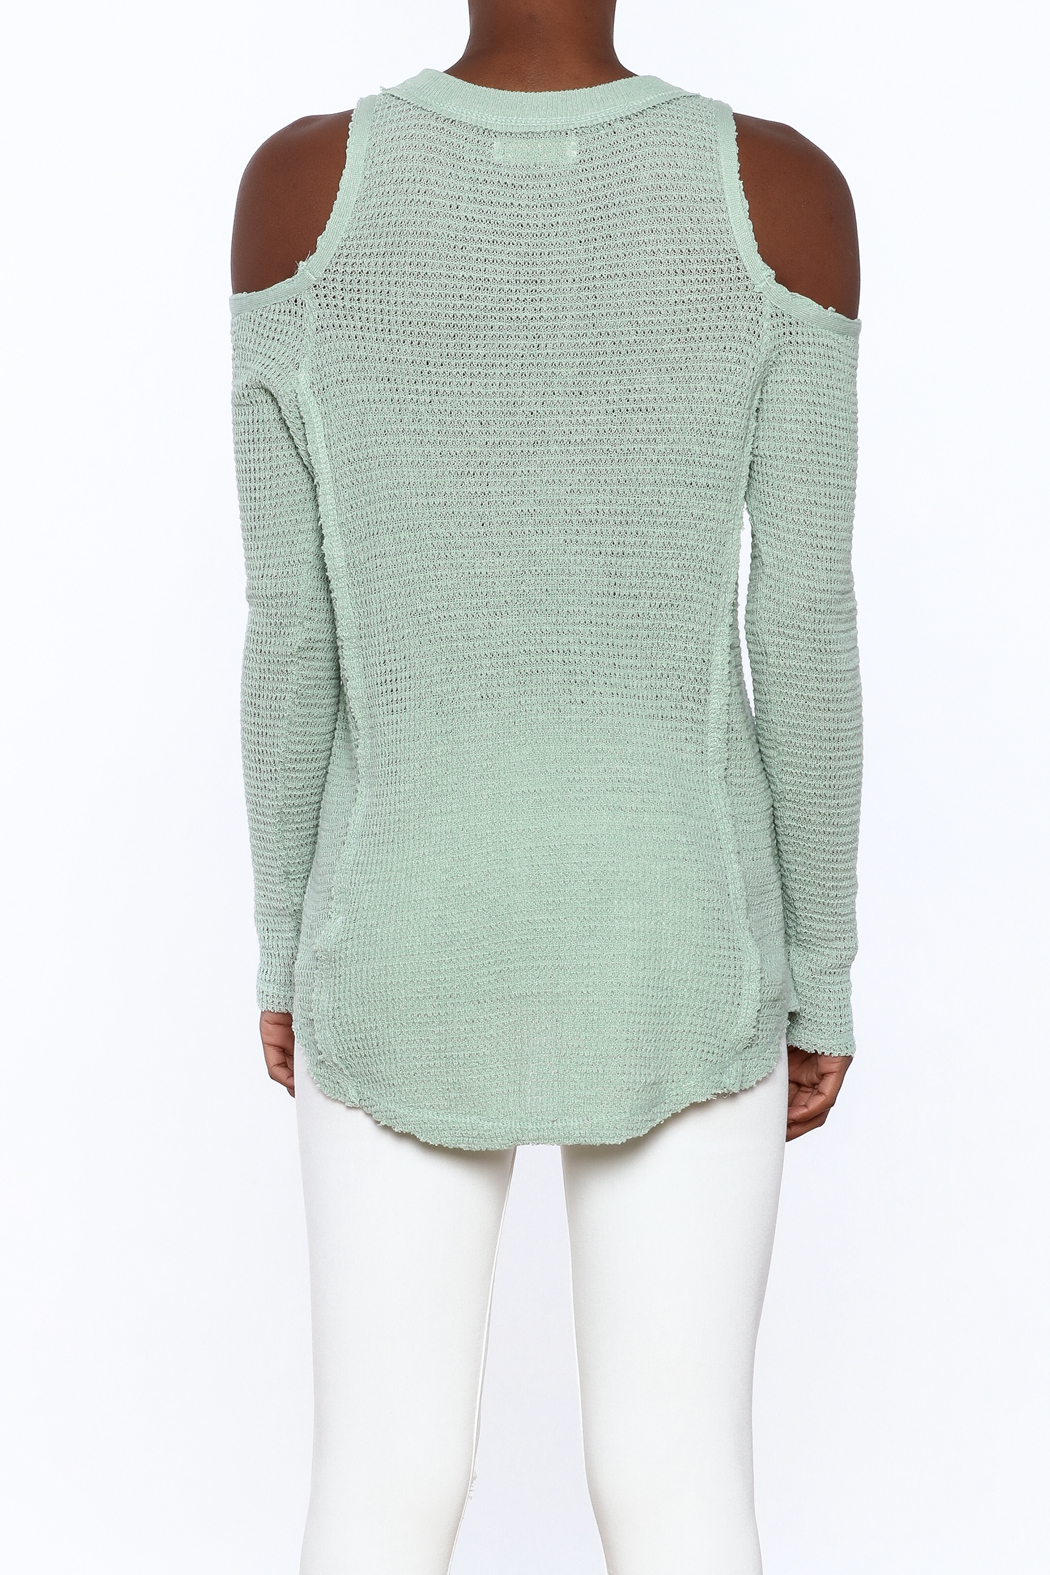 Elan Mint Green Sweater From Wyckoff By Bedford Basket